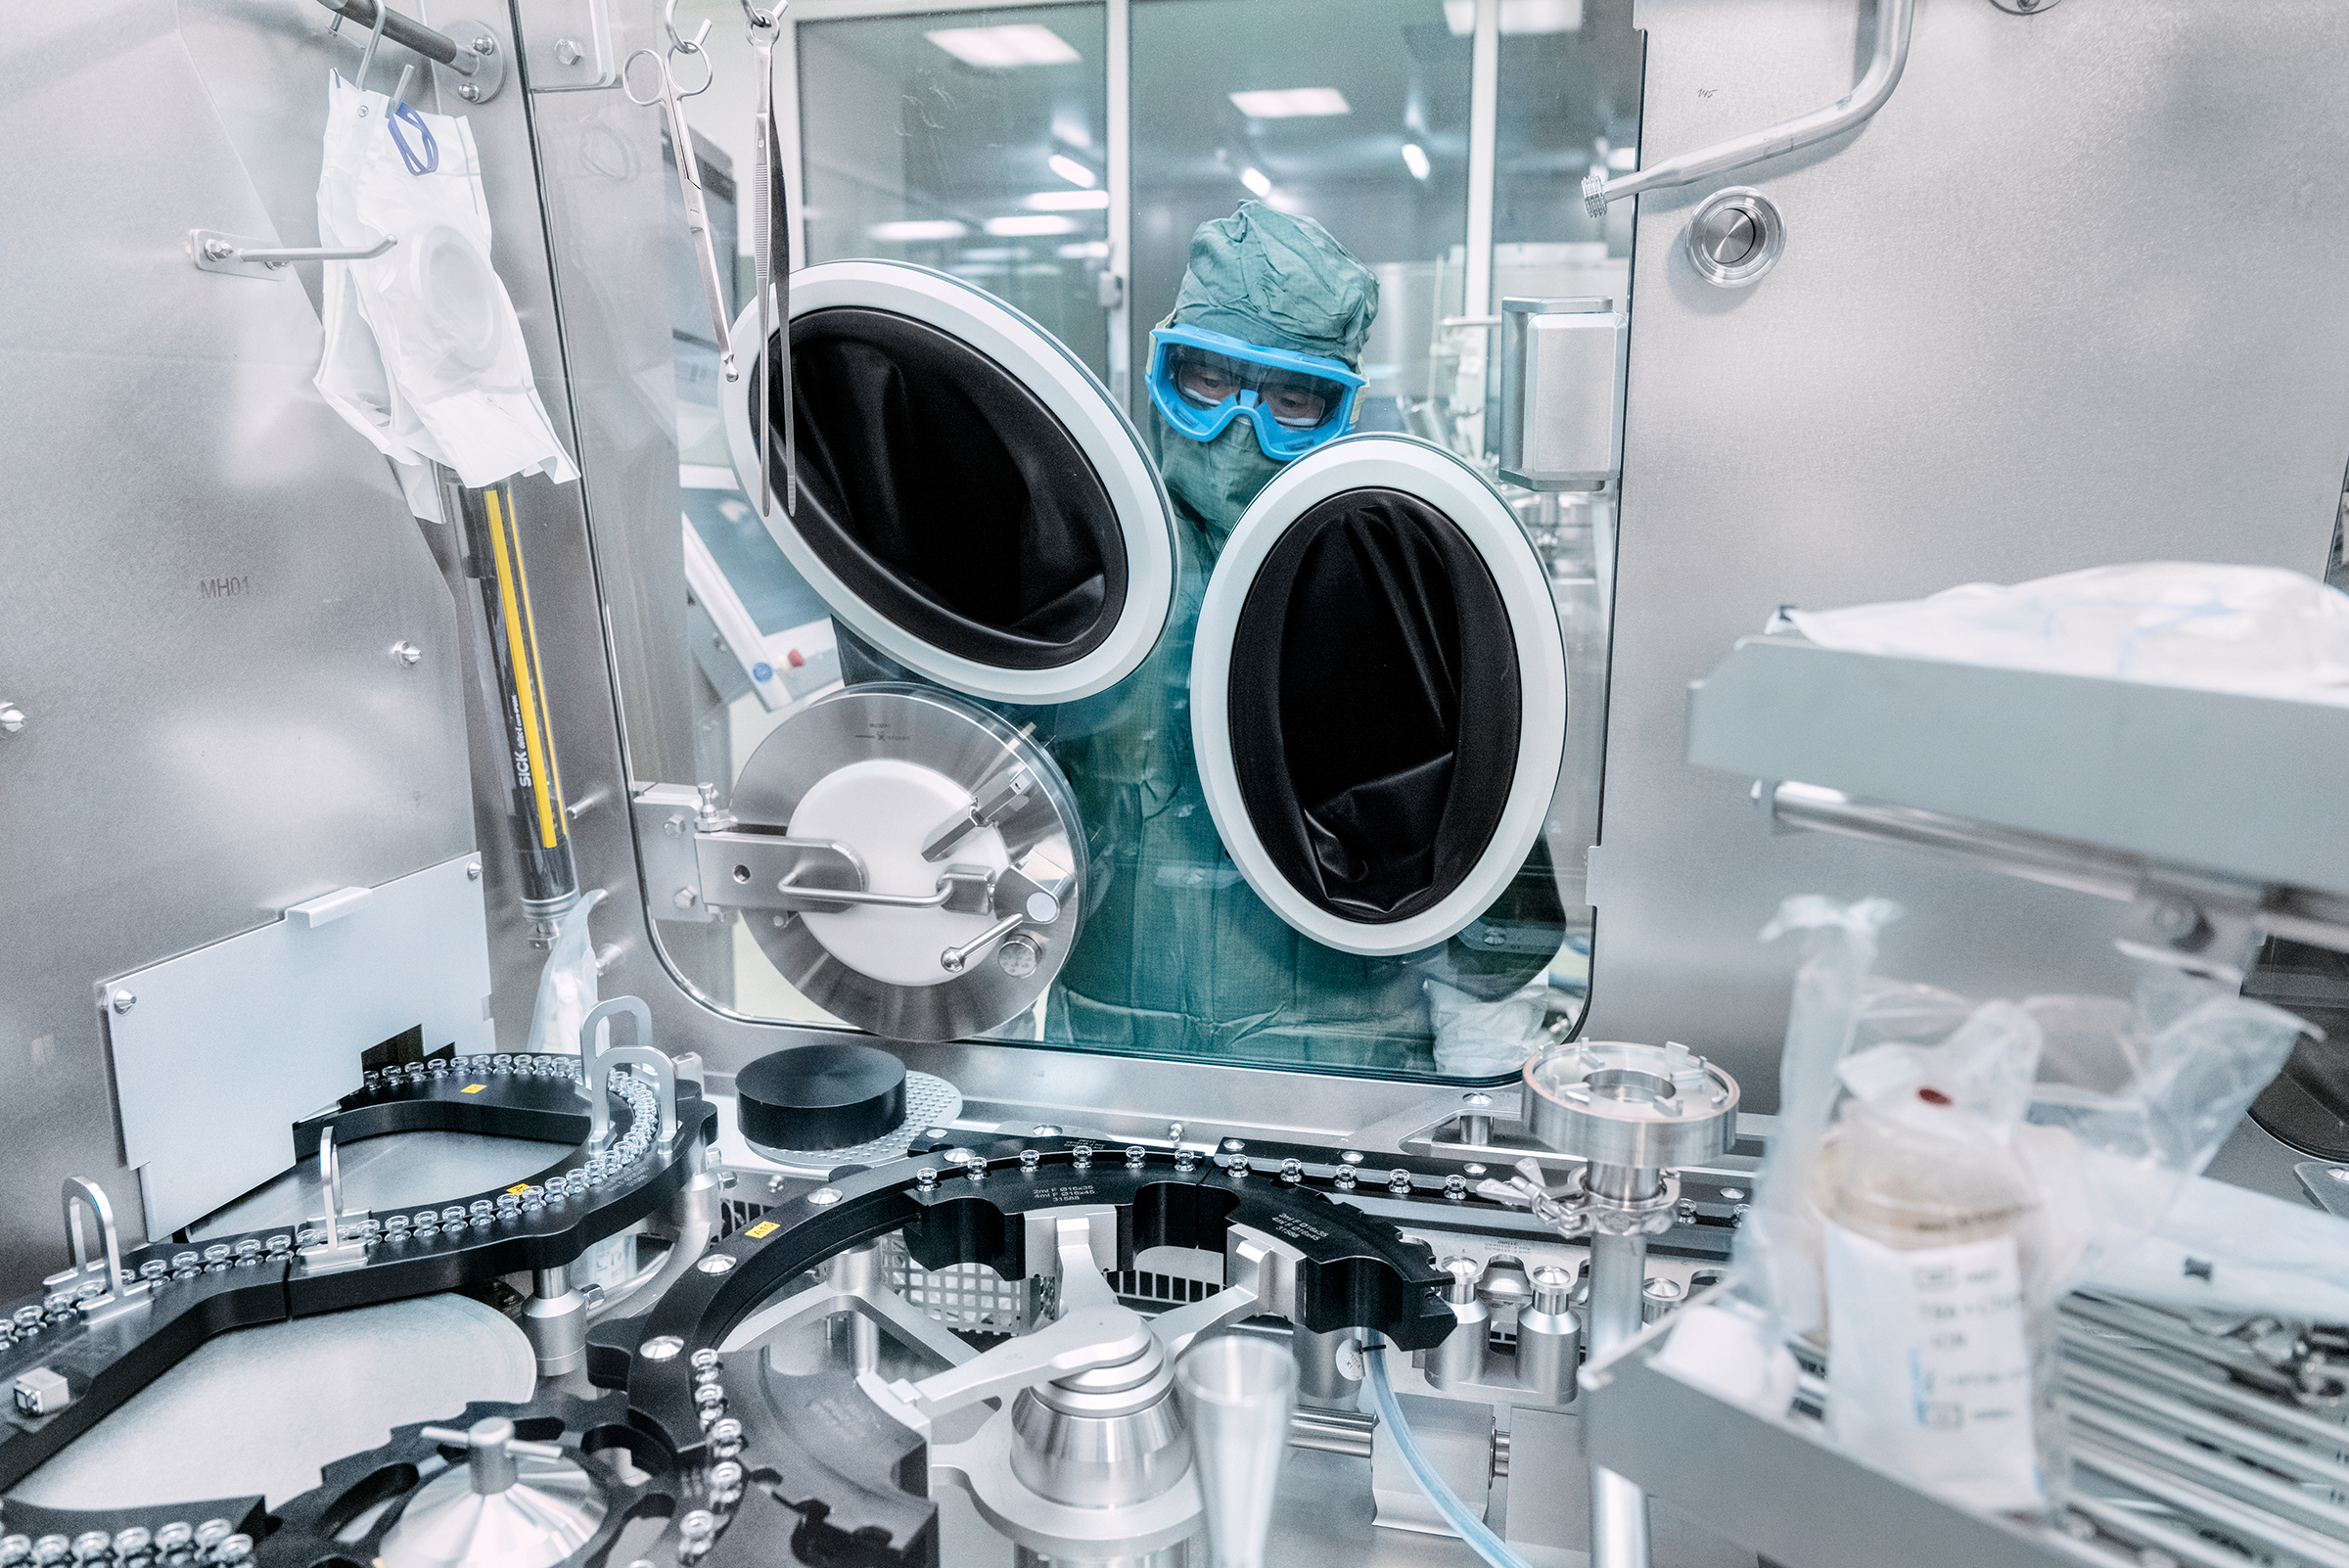 At the fill-and-finish facility operated by Baxter in Halle, 120 miles north of Marburg, technicians monitor the washing and sterilization of the vials before they are filled with vaccine, then stoppered and sealed.